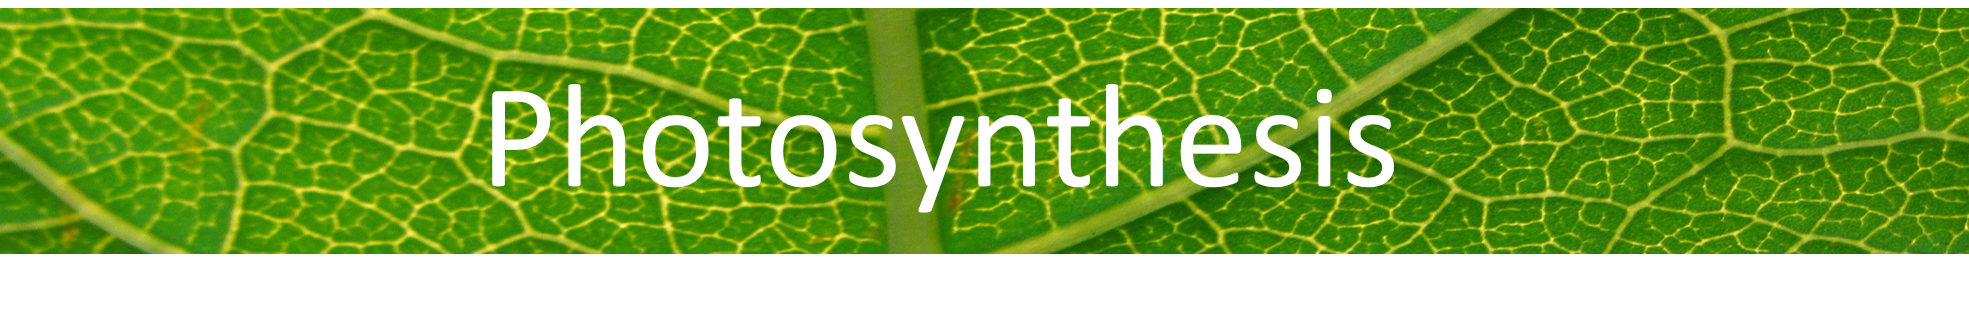 photosynthesis web banner